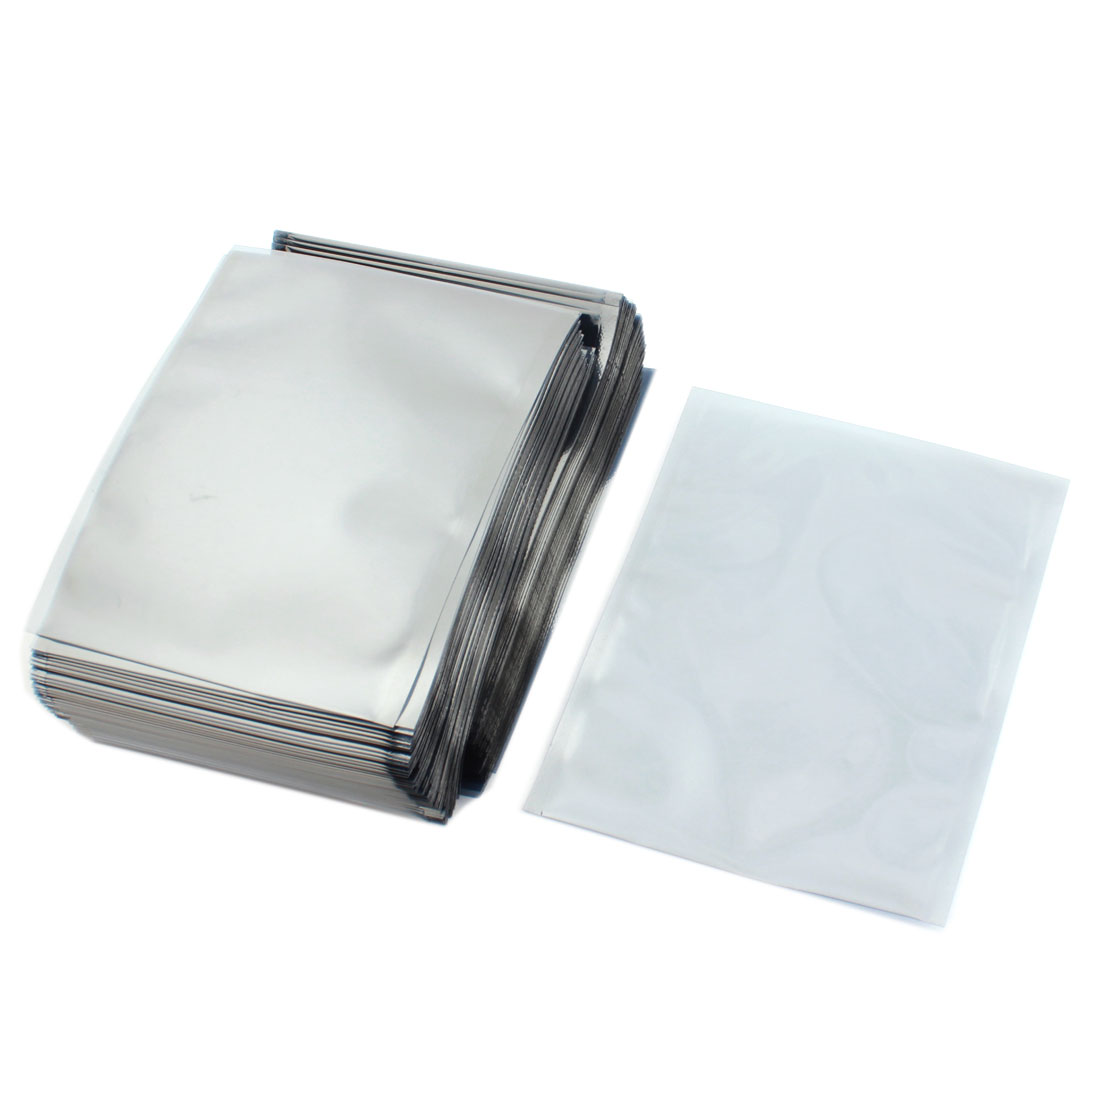 "200pcs 4"" x 5"" ESD Anti-Static Shielding Bags Open-Top 100mmx125mm"